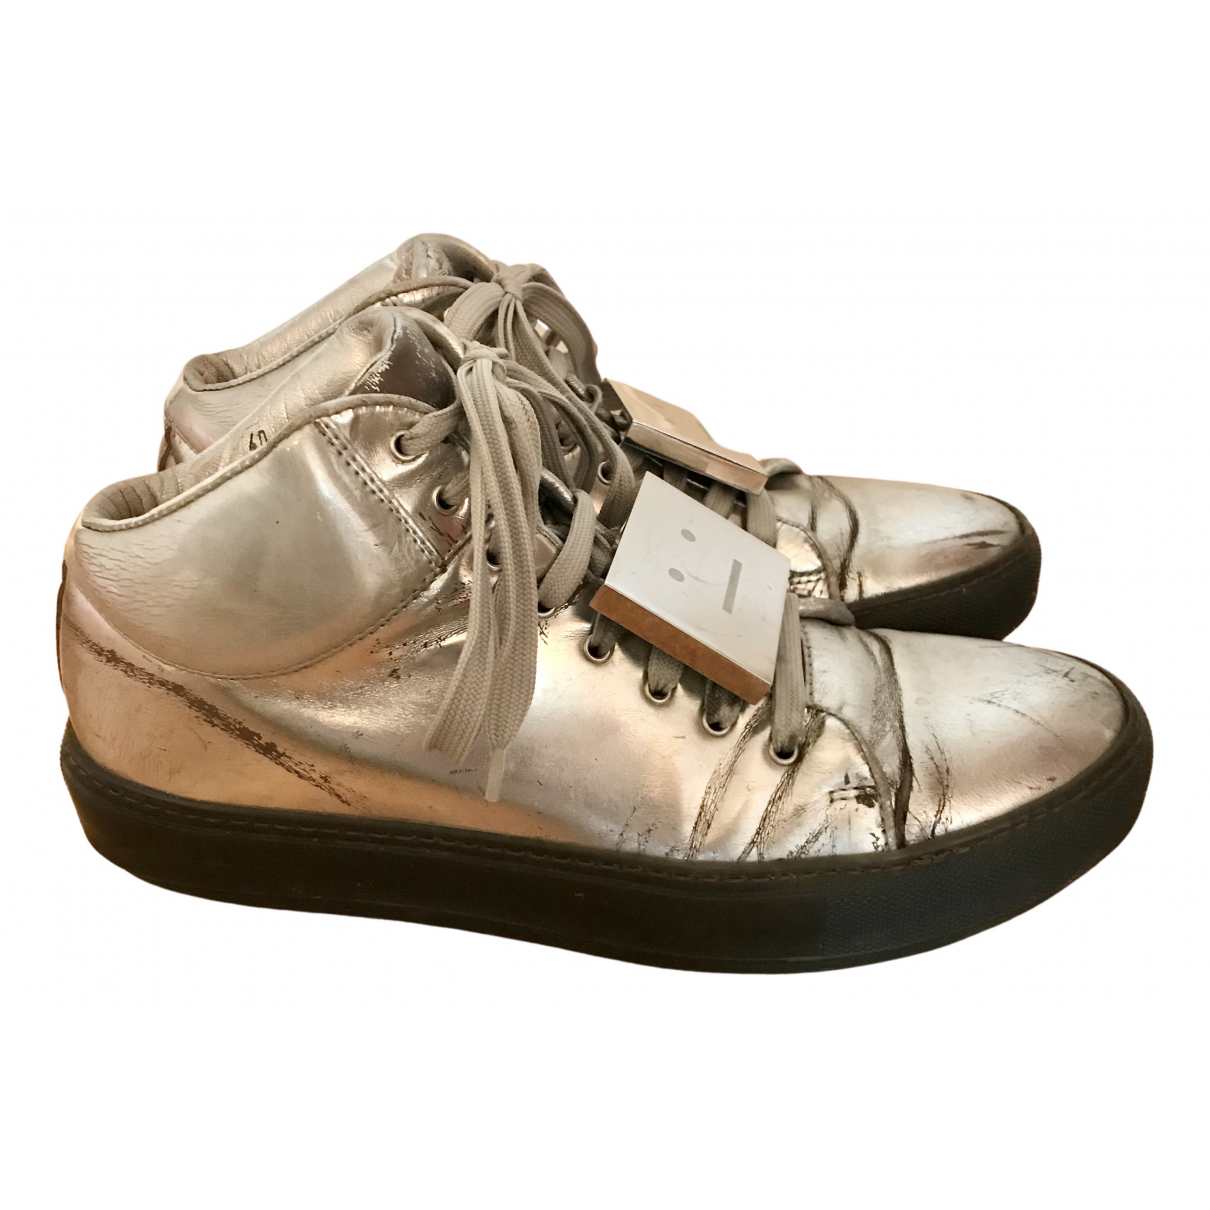 Acne Studios N Silver Leather Trainers for Women 40 EU